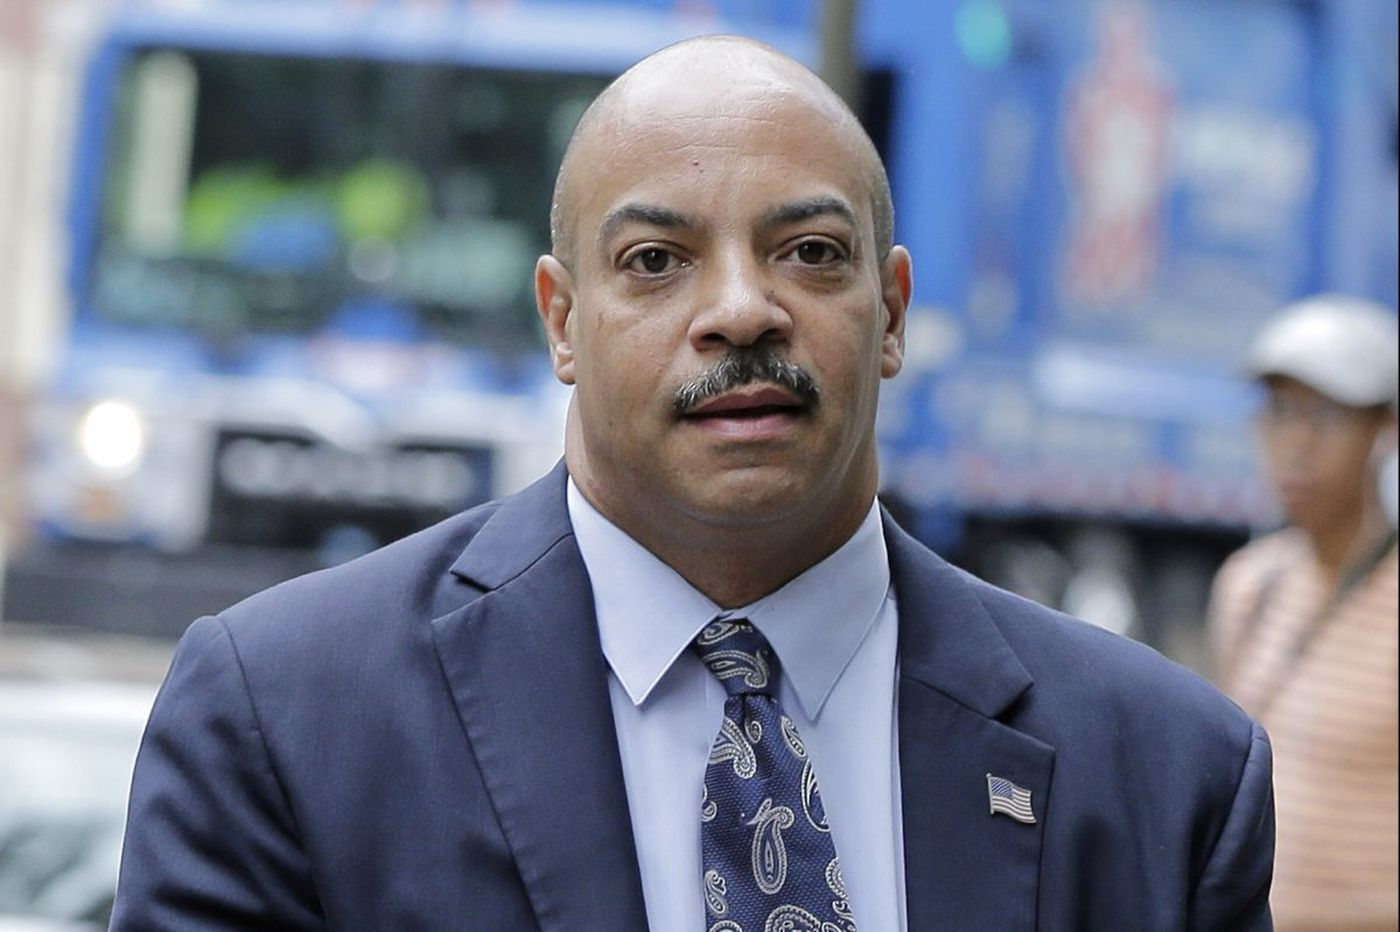 Irate judge gives ex-Philly DA Seth Williams 5-year sentence in bribery, corruption case